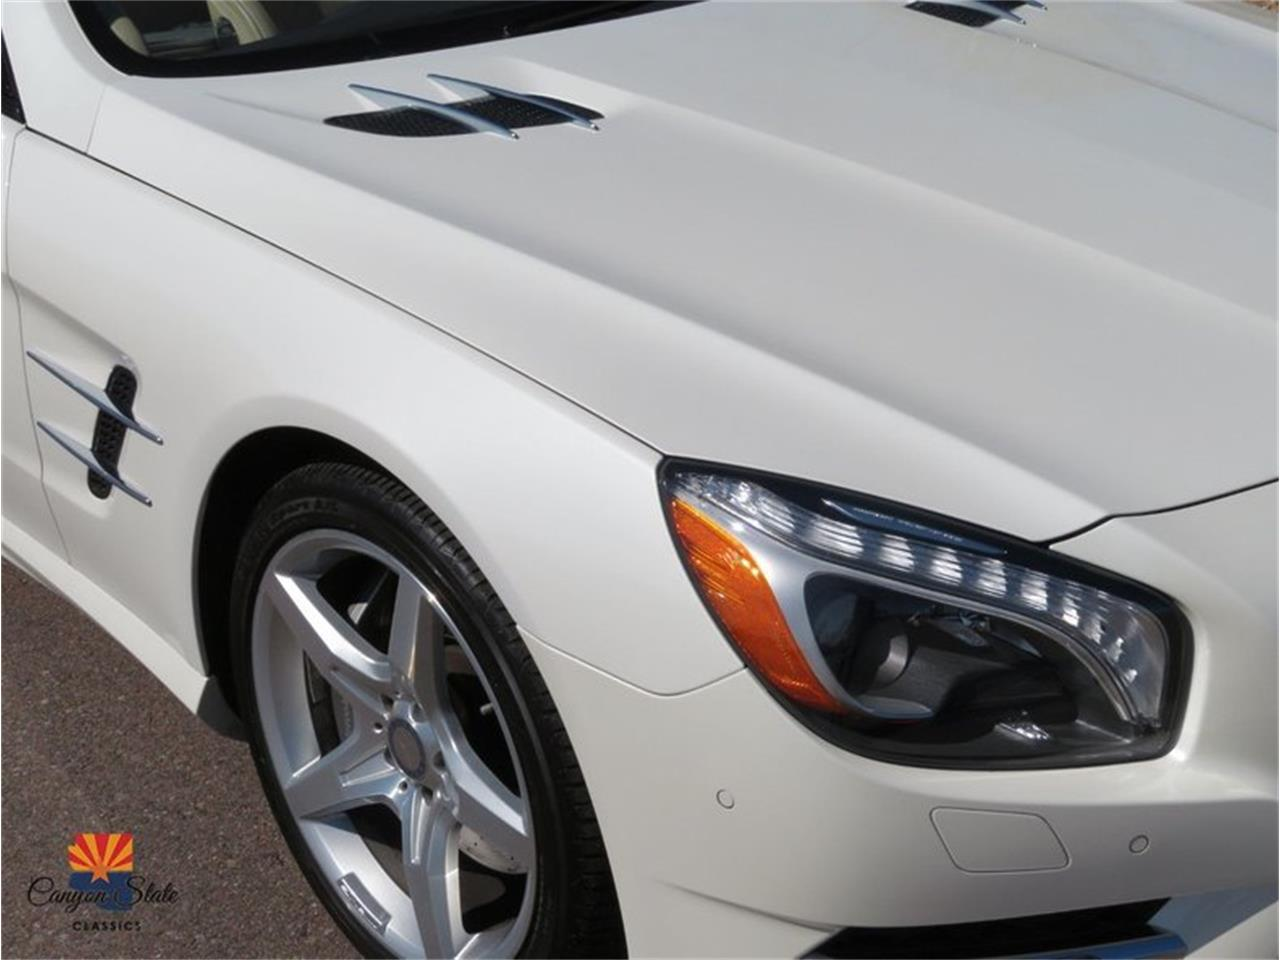 2013 Mercedes-Benz SL-Class for sale in Tempe, AZ – photo 46